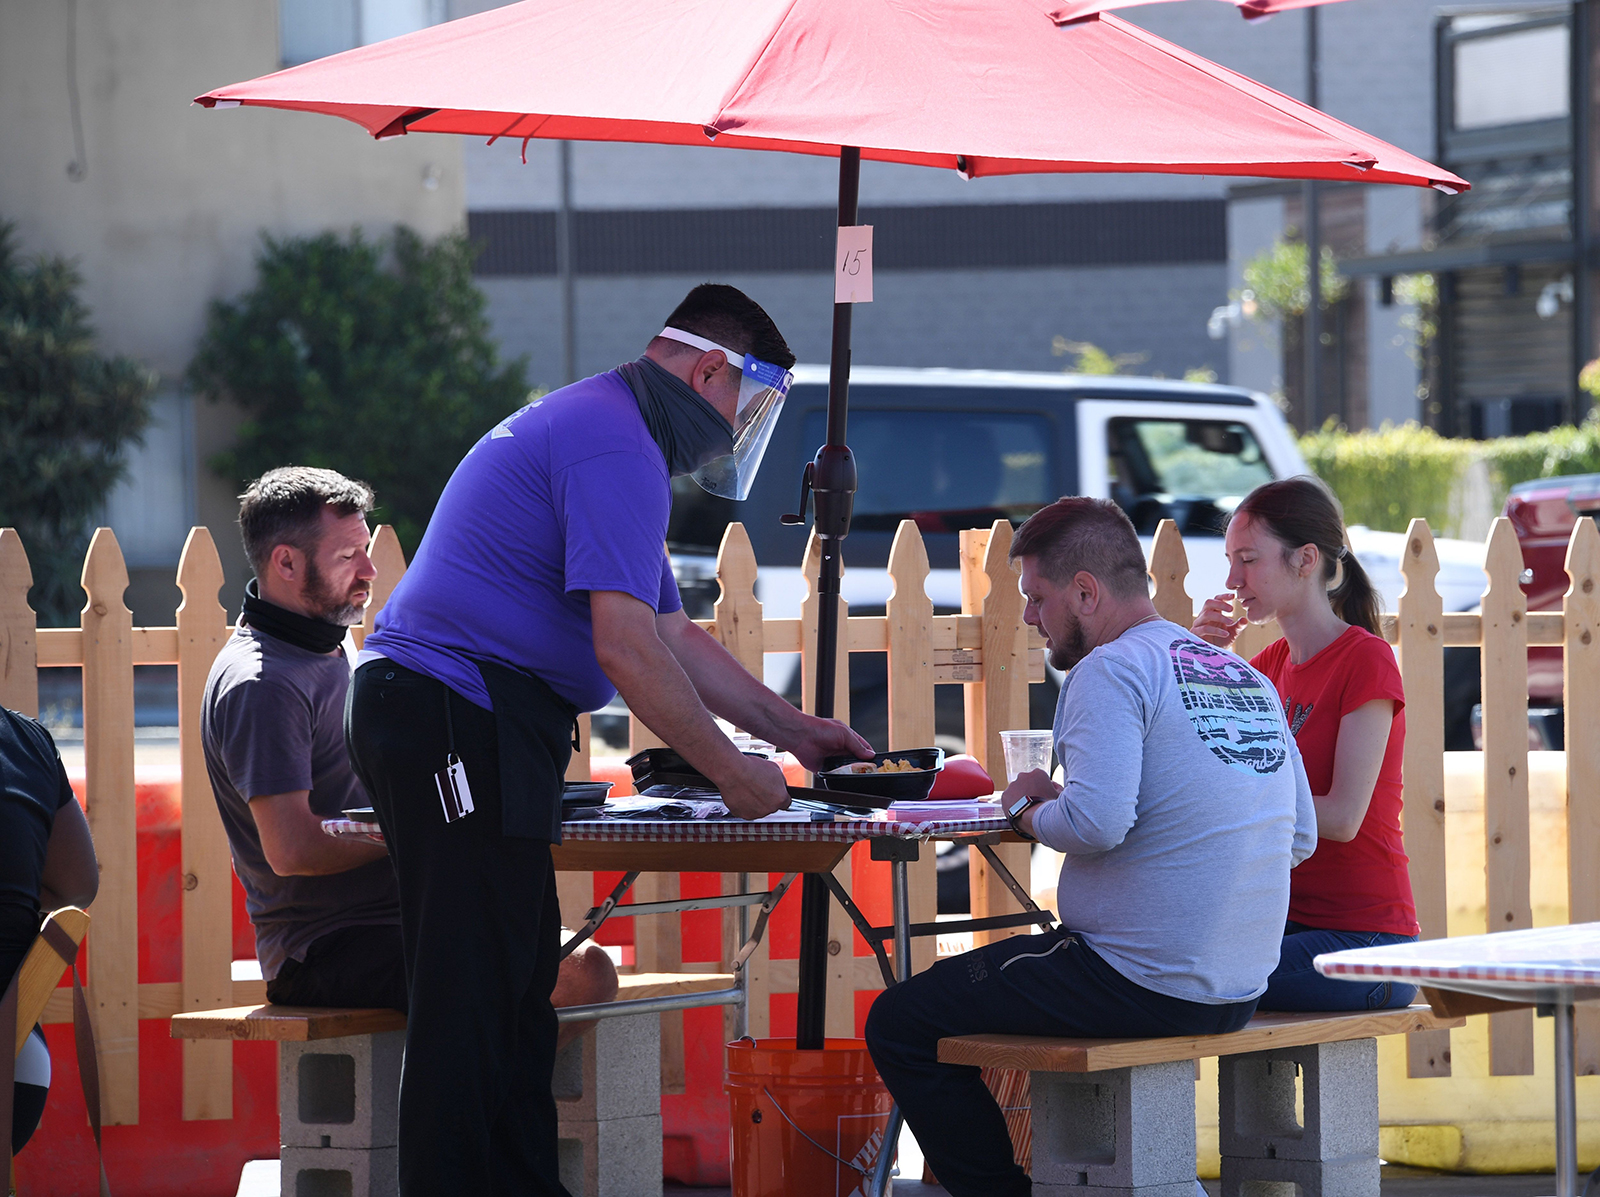 A waiter wearing protective gear serves food to customers on the patio at Pann's restaurant and coffee shop on July 4, in Los Angeles.